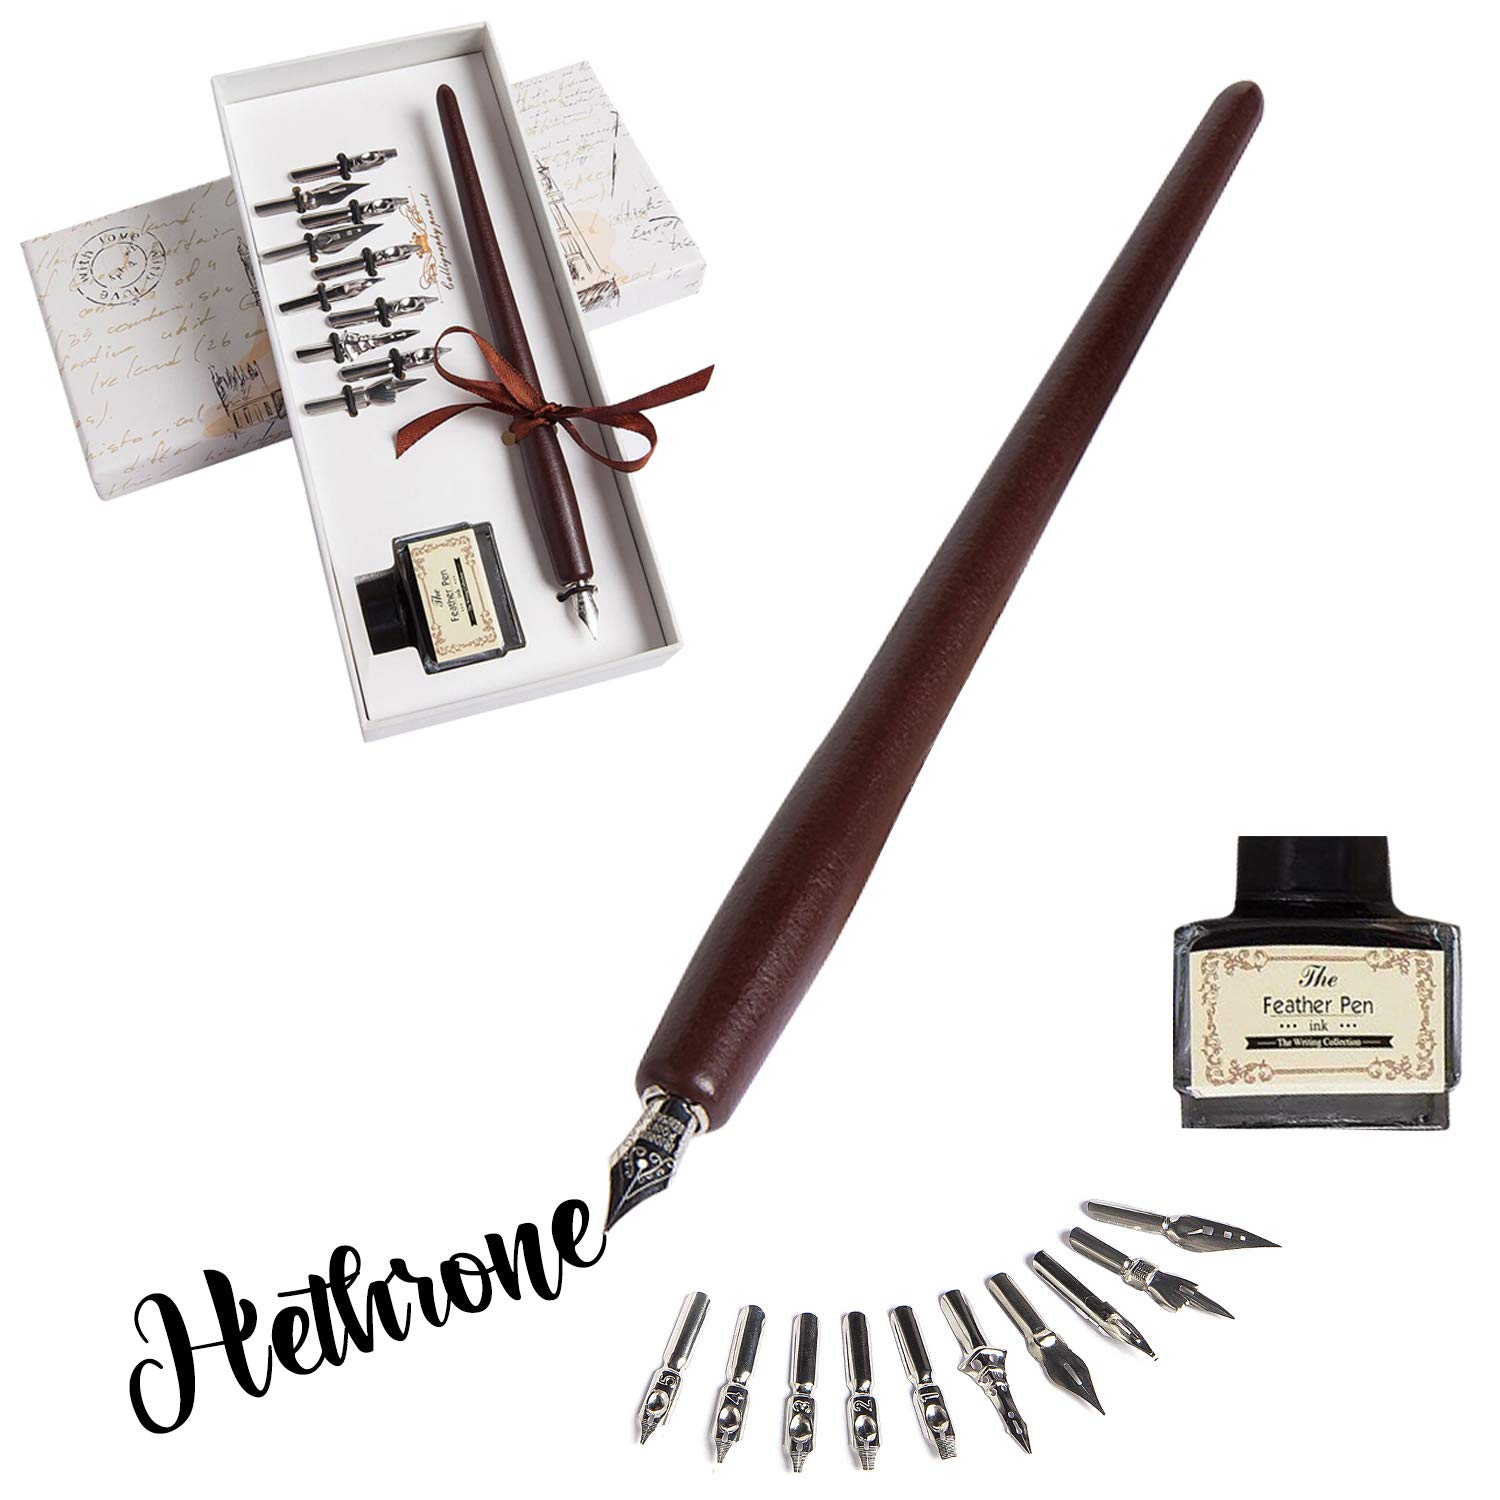 Hethrone Calligraphy Pen Set Fountain Dip Pen and Ink Writing Pen with 11 Nibs and Black Ink Calligraphy Set for Beginners Perfect Gift